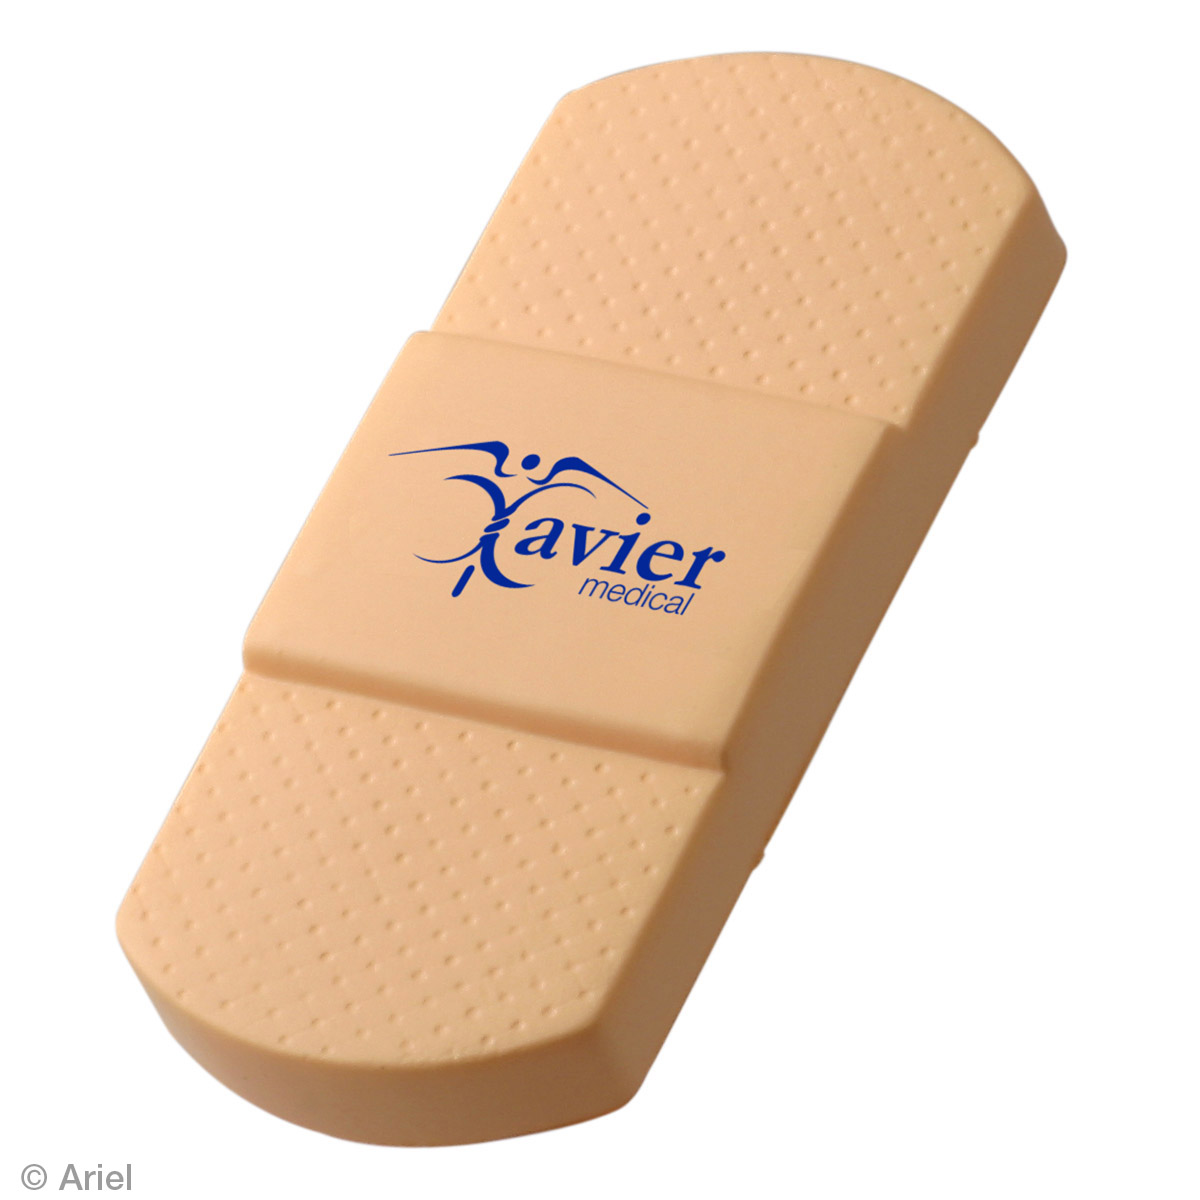 Adhesive Bandage Stress Reliever, LAN-AD06 - 1 Colour Imprint